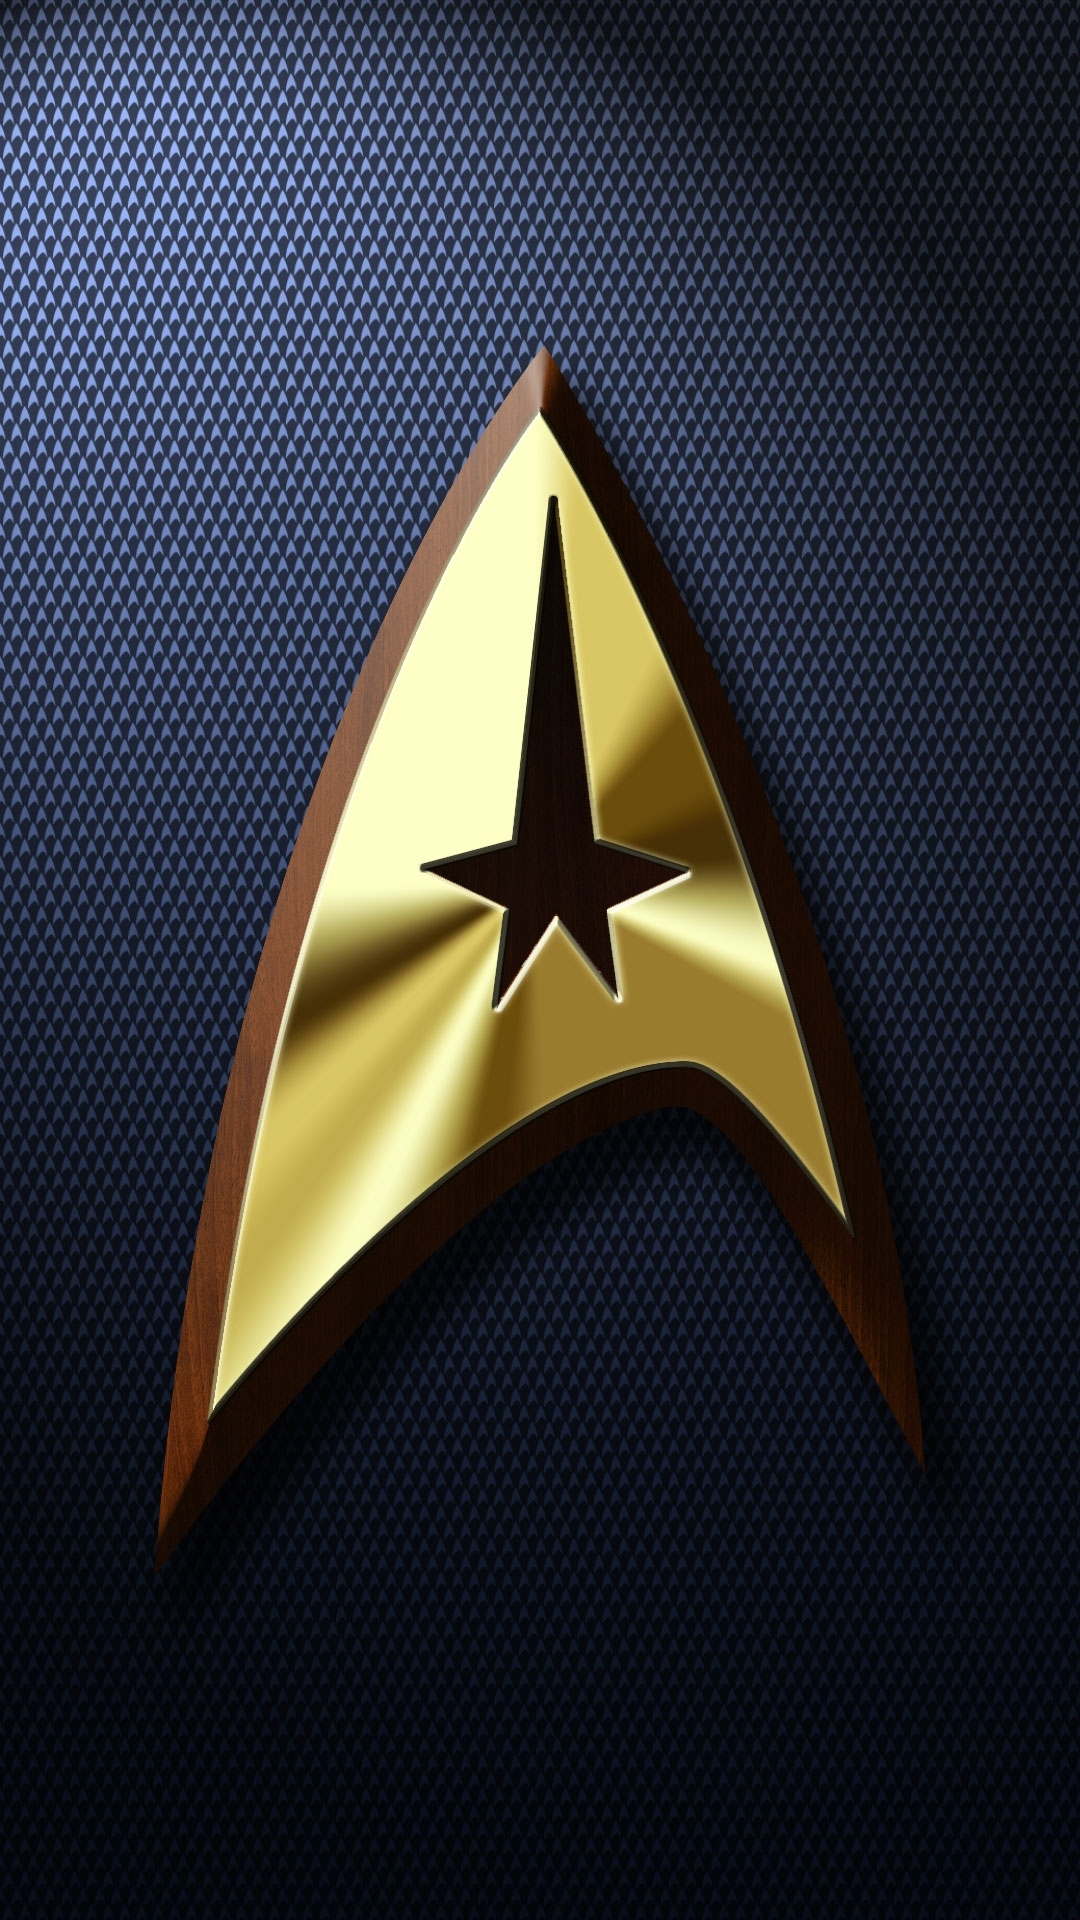 star trek phone wallpapers